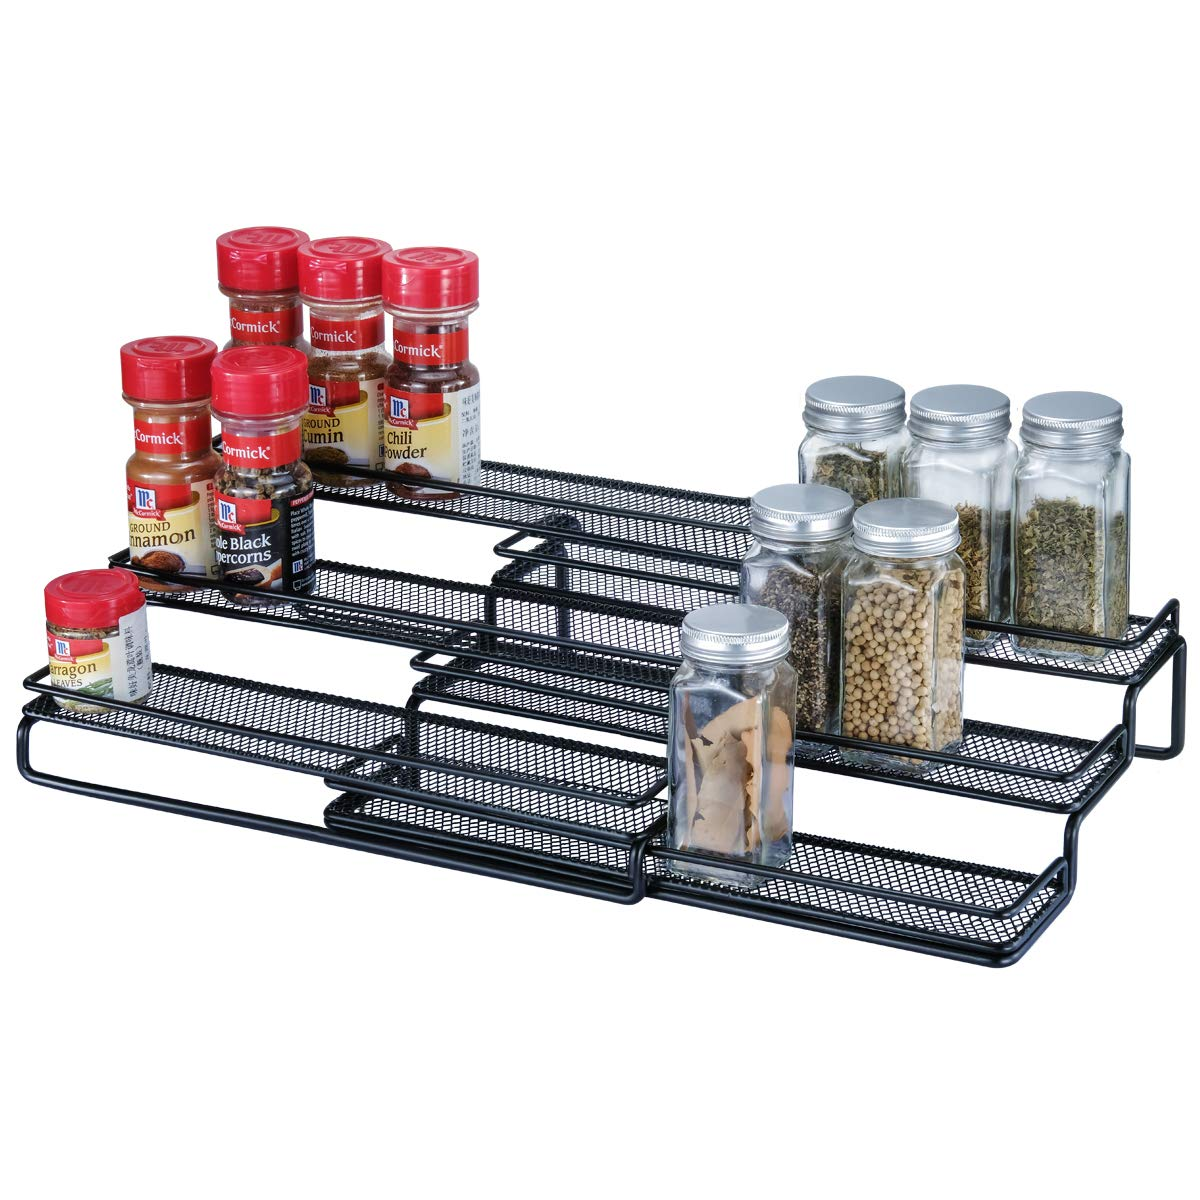 """3 Tier Expandable Cabinet Spice Rack Organizer - Step Shelf with Protection Railing (12.5 to 25""""W), Black"""